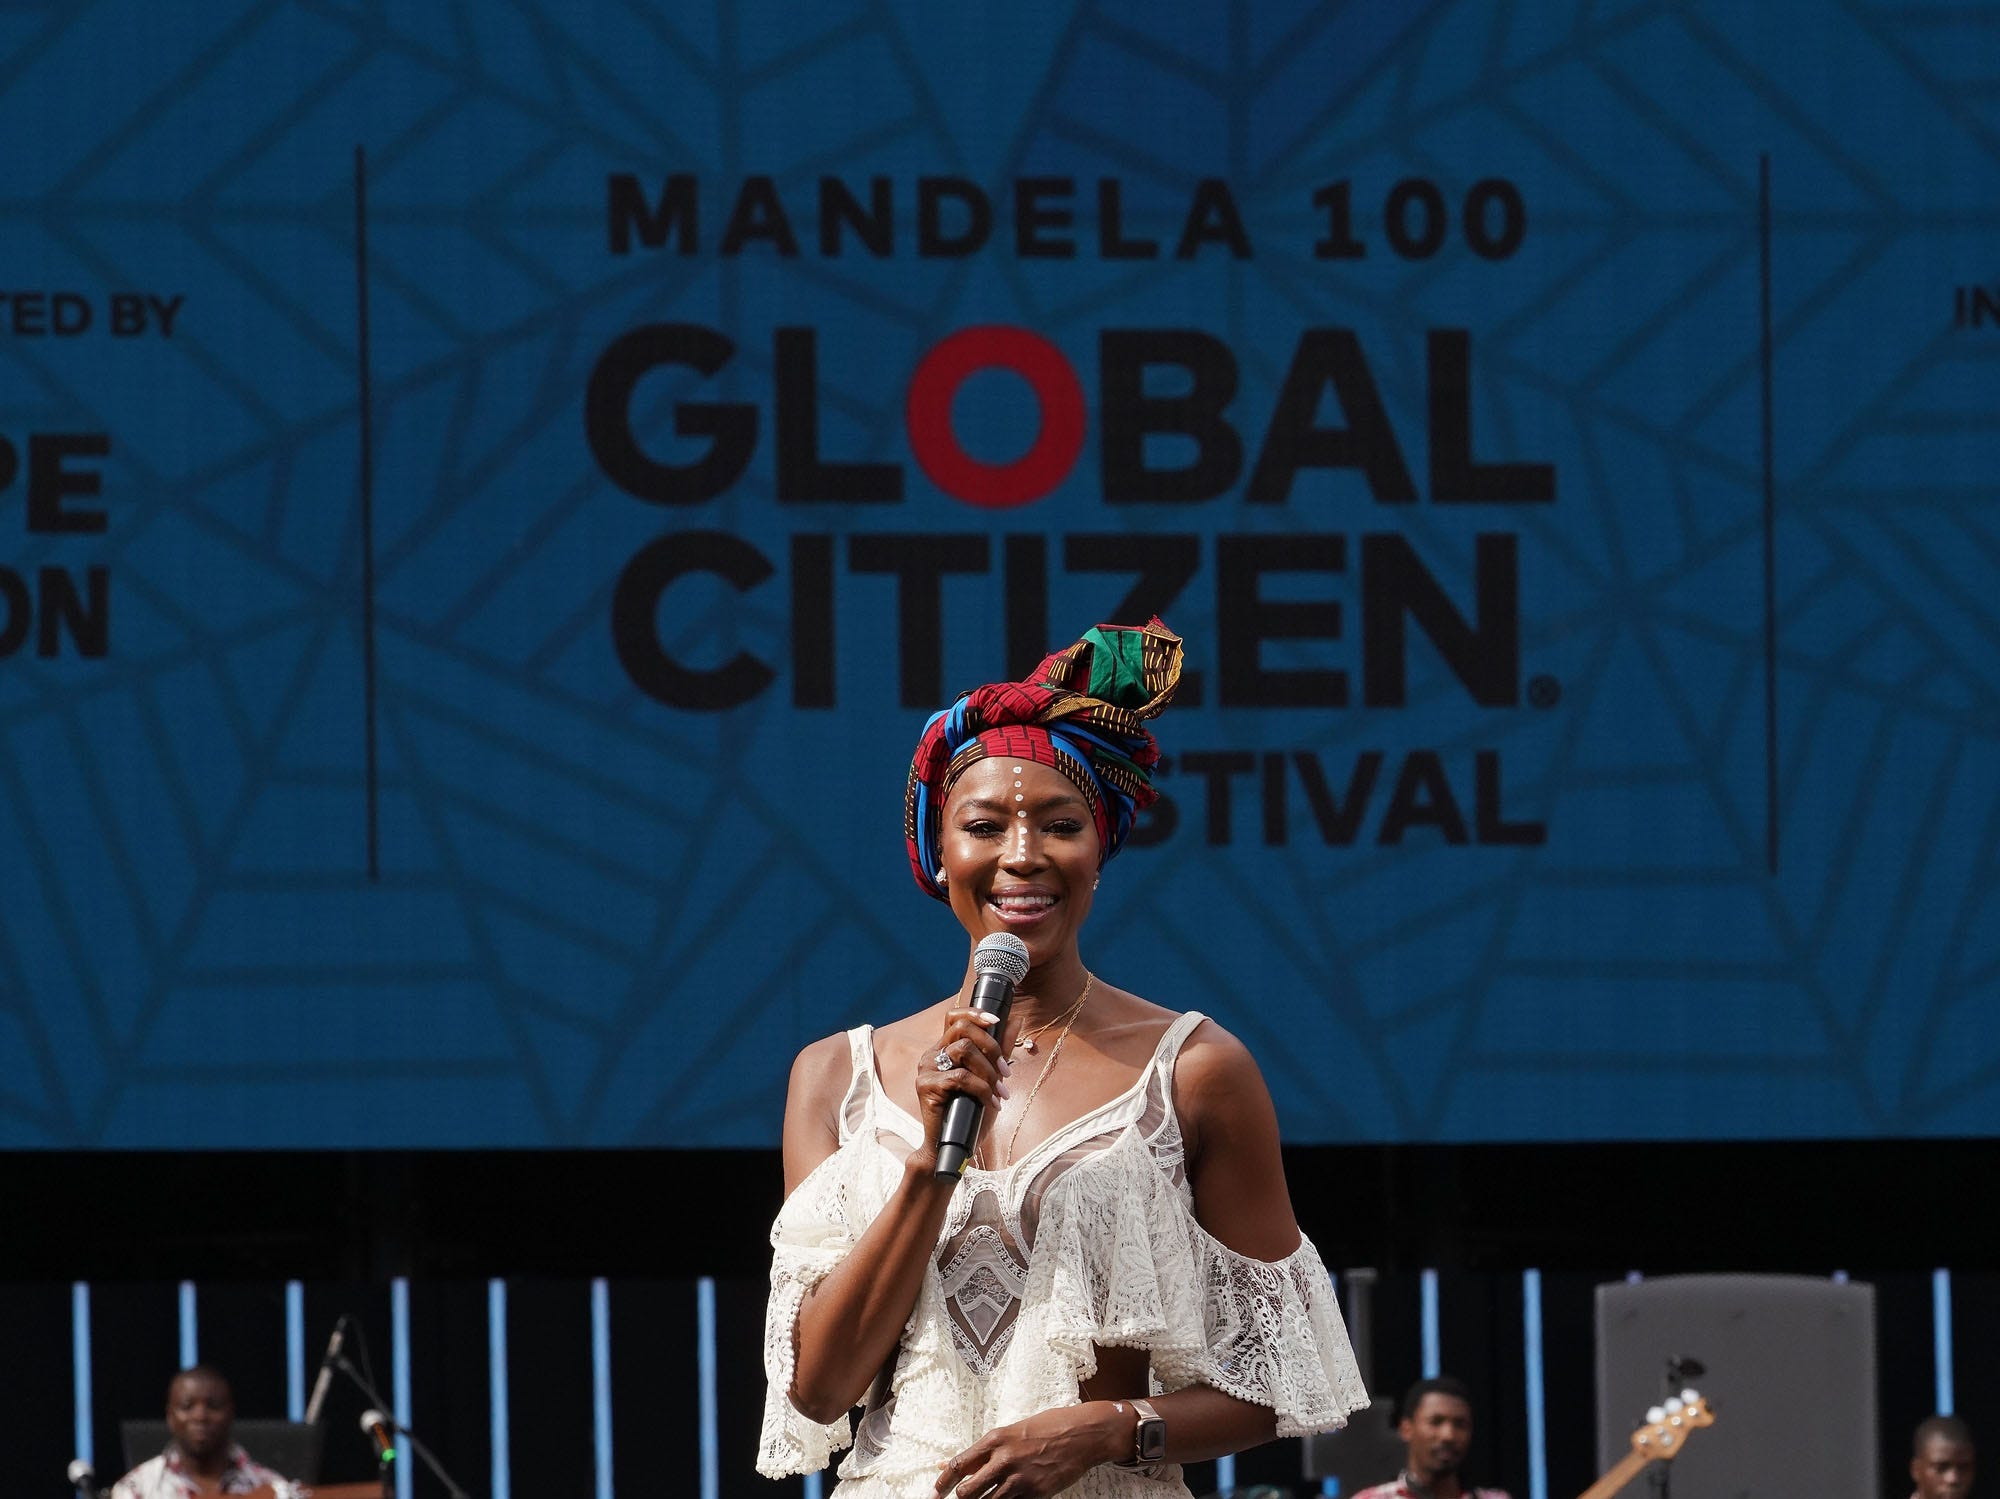 JOHANNESBURG, SOUTH AFRICA - DECEMBER 02:  Naomi Campbell speaks on stage during the Global Citizen Festival: Mandela 100 at FNB Stadium on December 2, 2018 in Johannesburg, South Africa.  (Photo by Jemal Countess/Getty Images for Global Citizen Festival: Mandela 100) ORG XMIT: 775264426 ORIG FILE ID: 1067594166